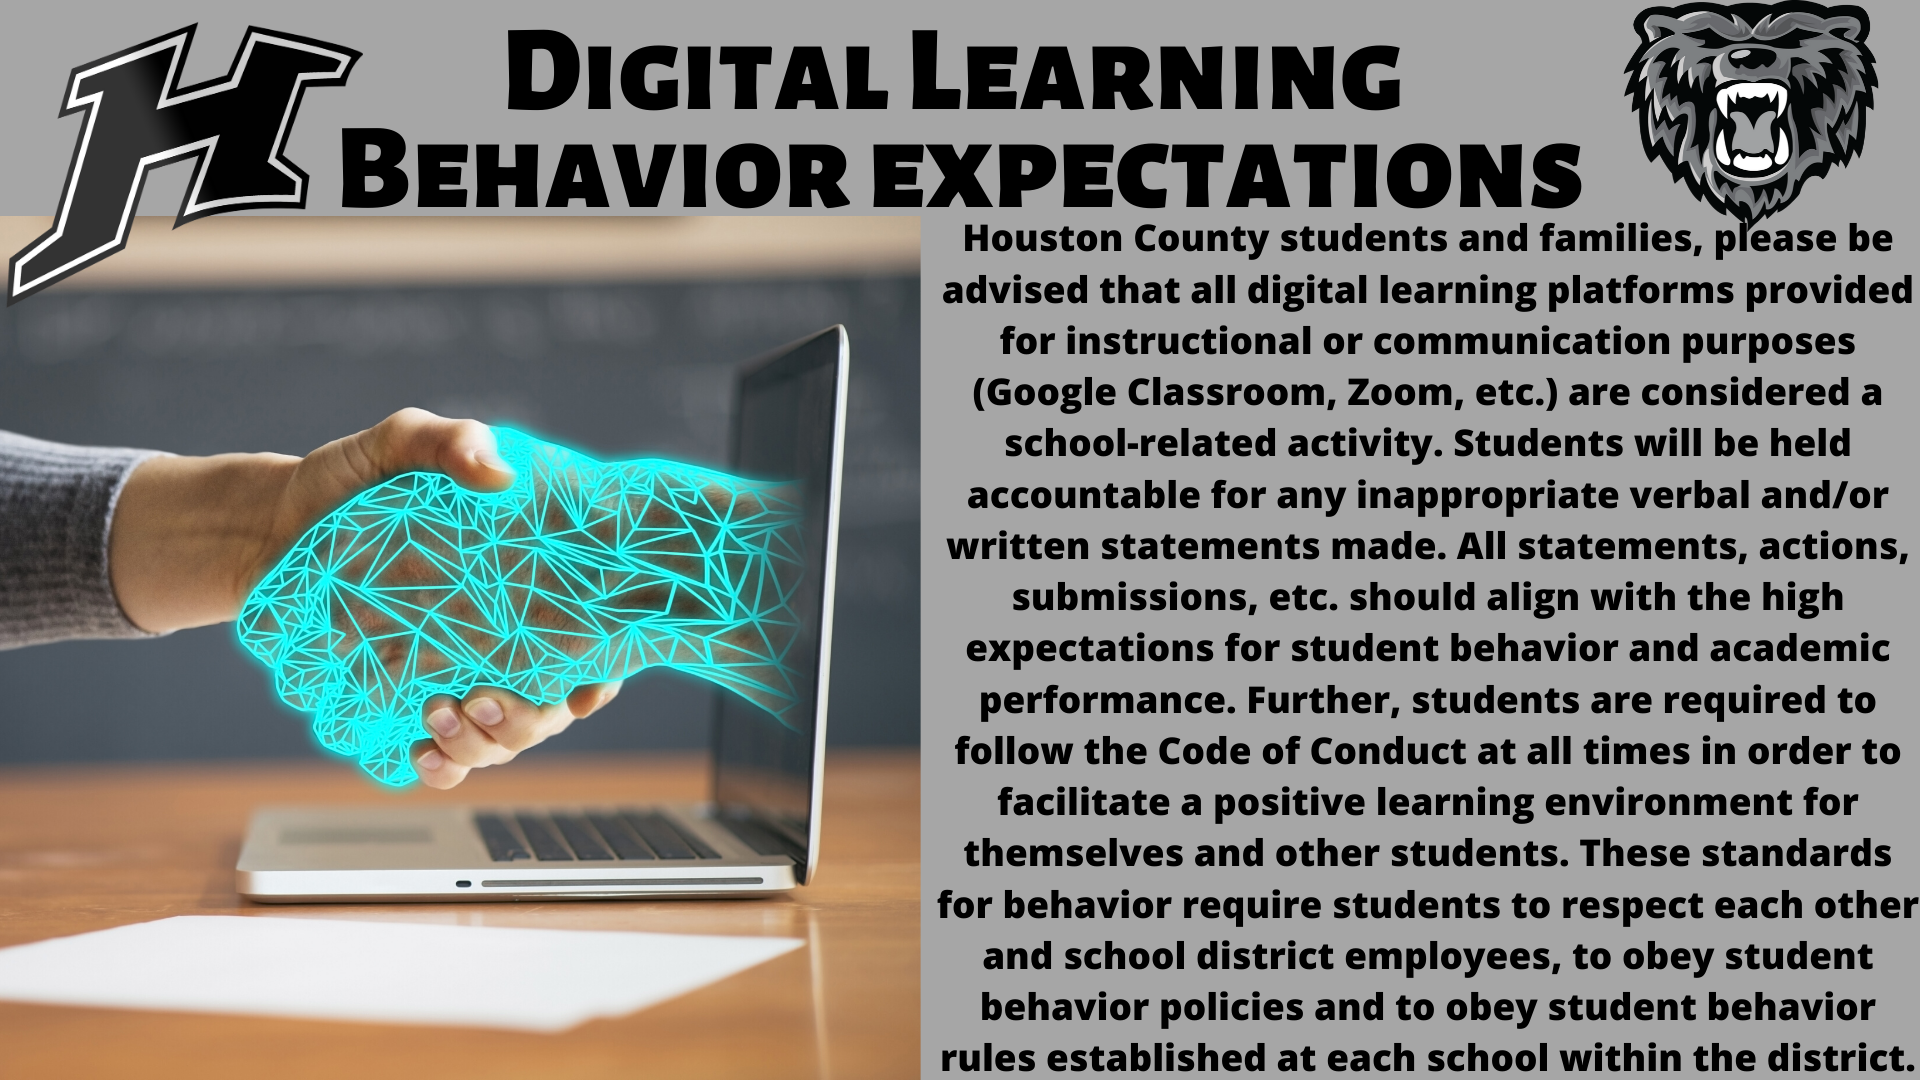 Digital Learning Behavior Expectations